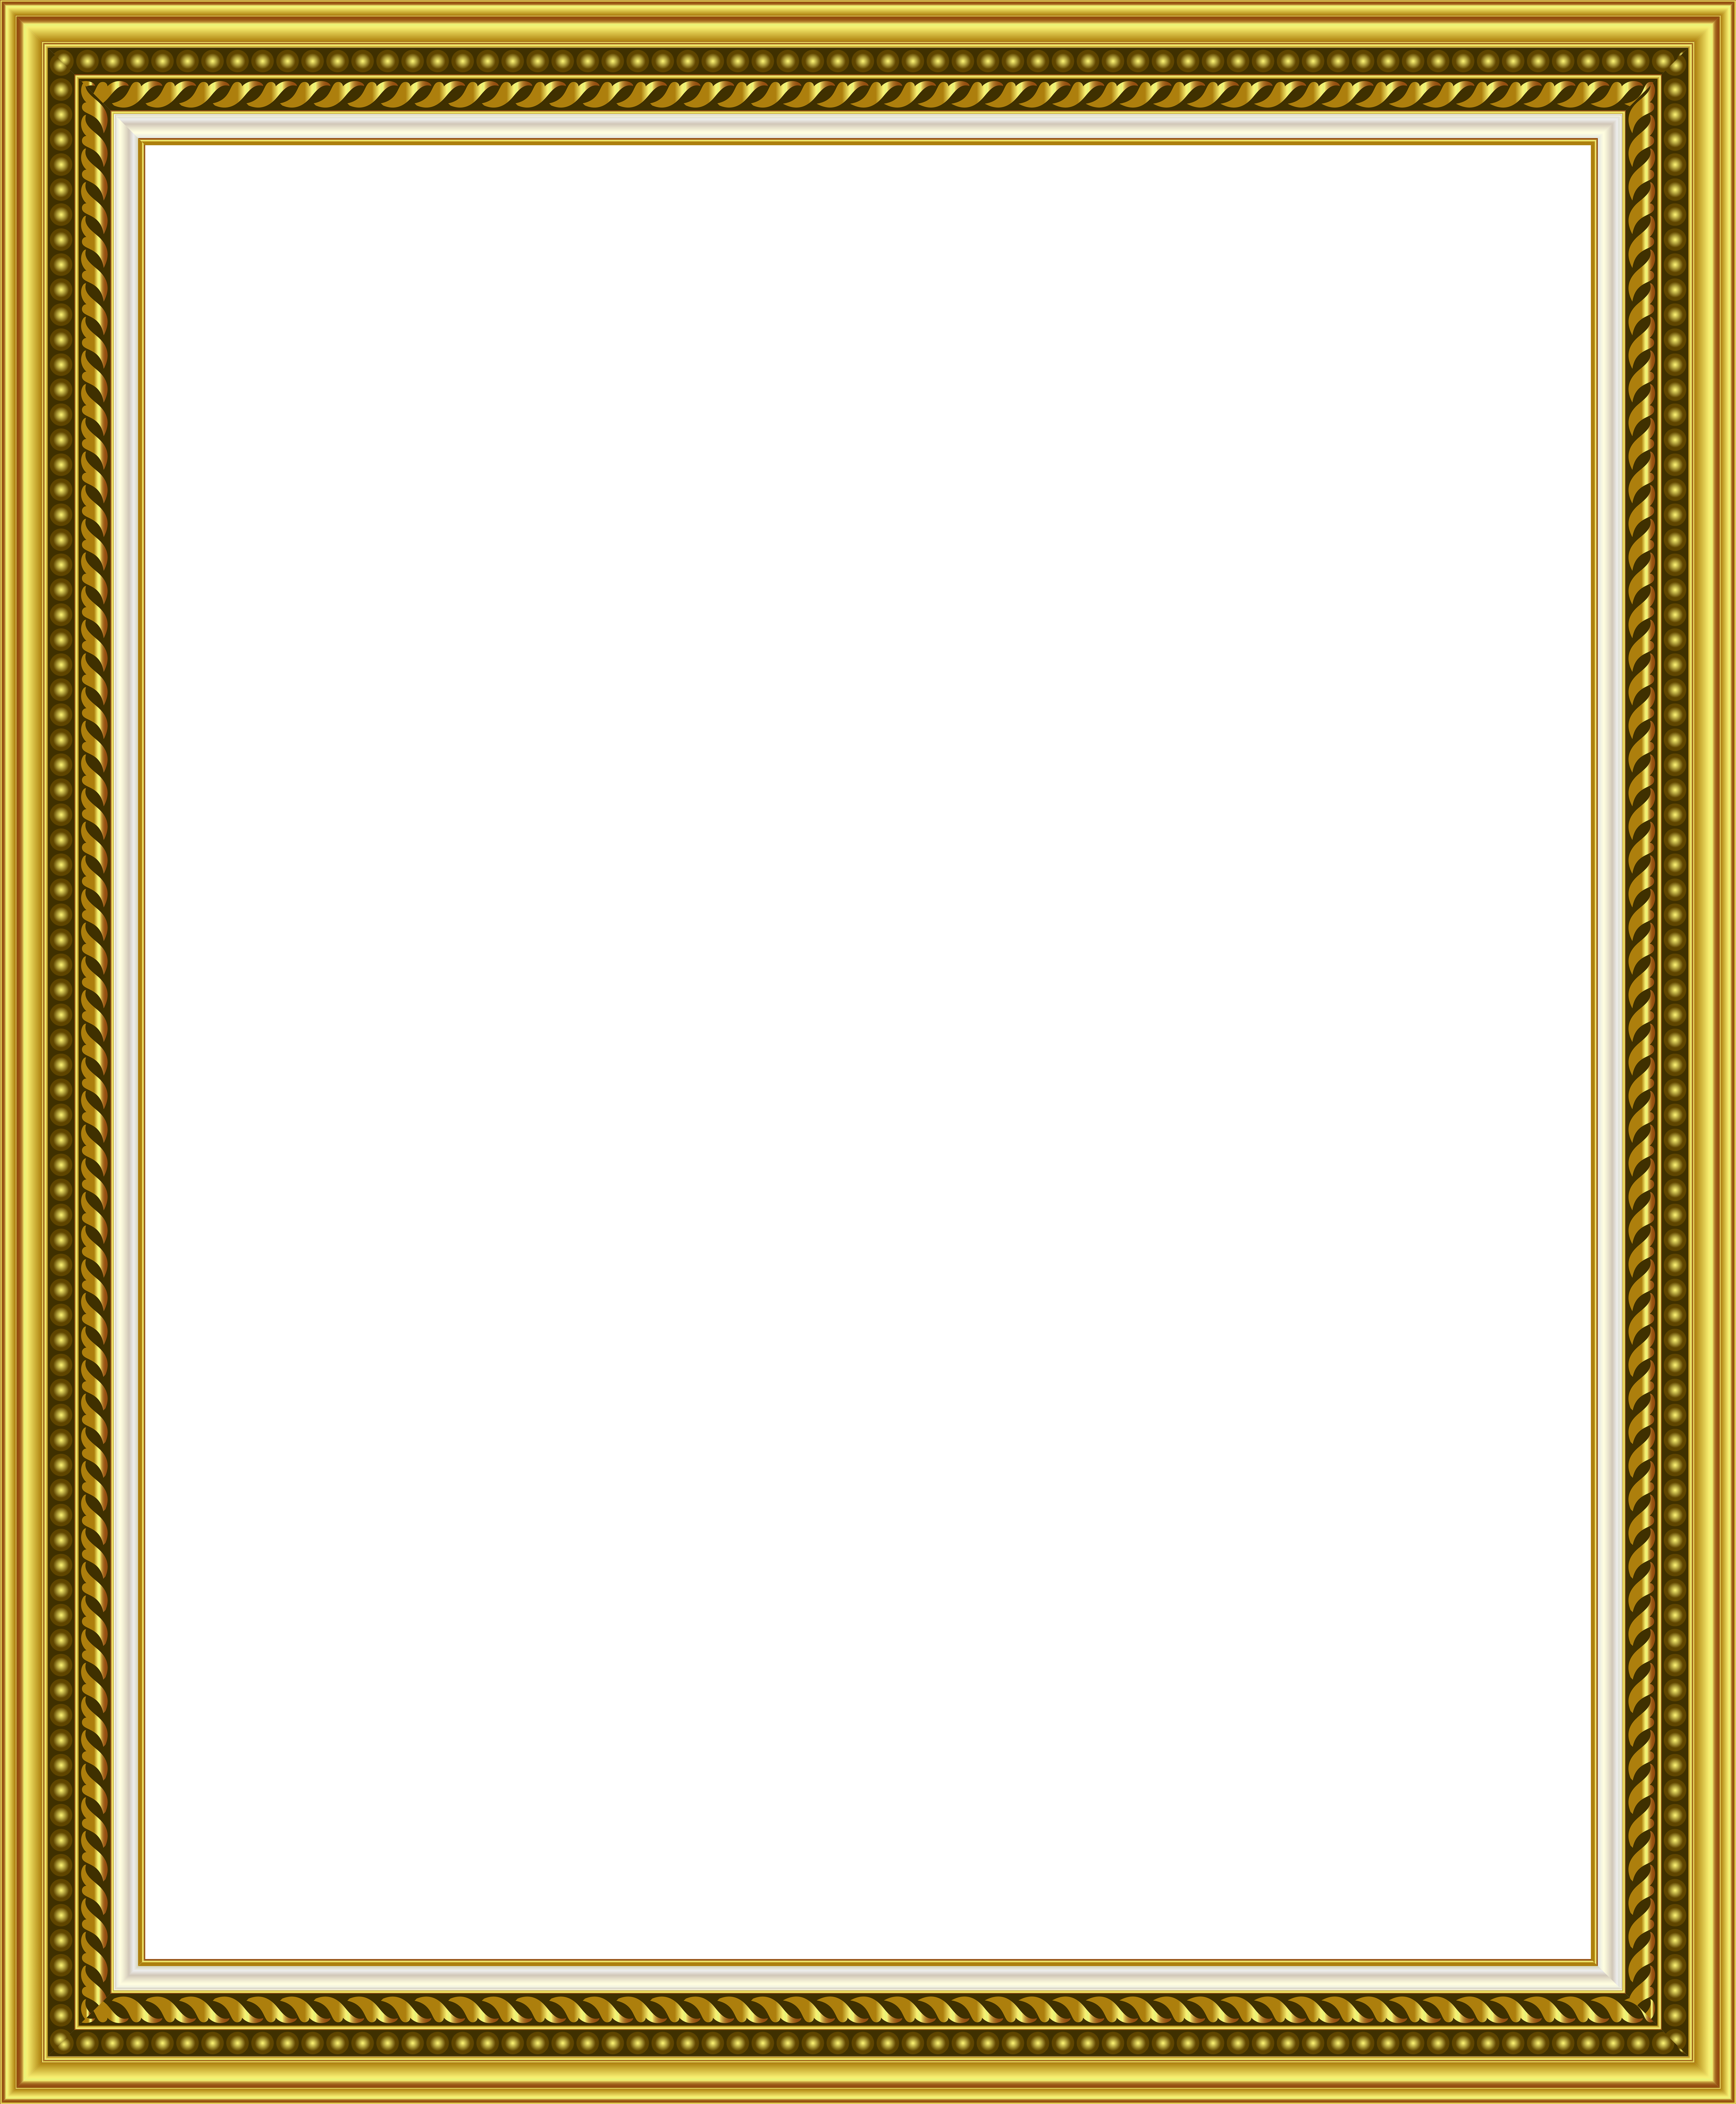 Photo Frame Png.